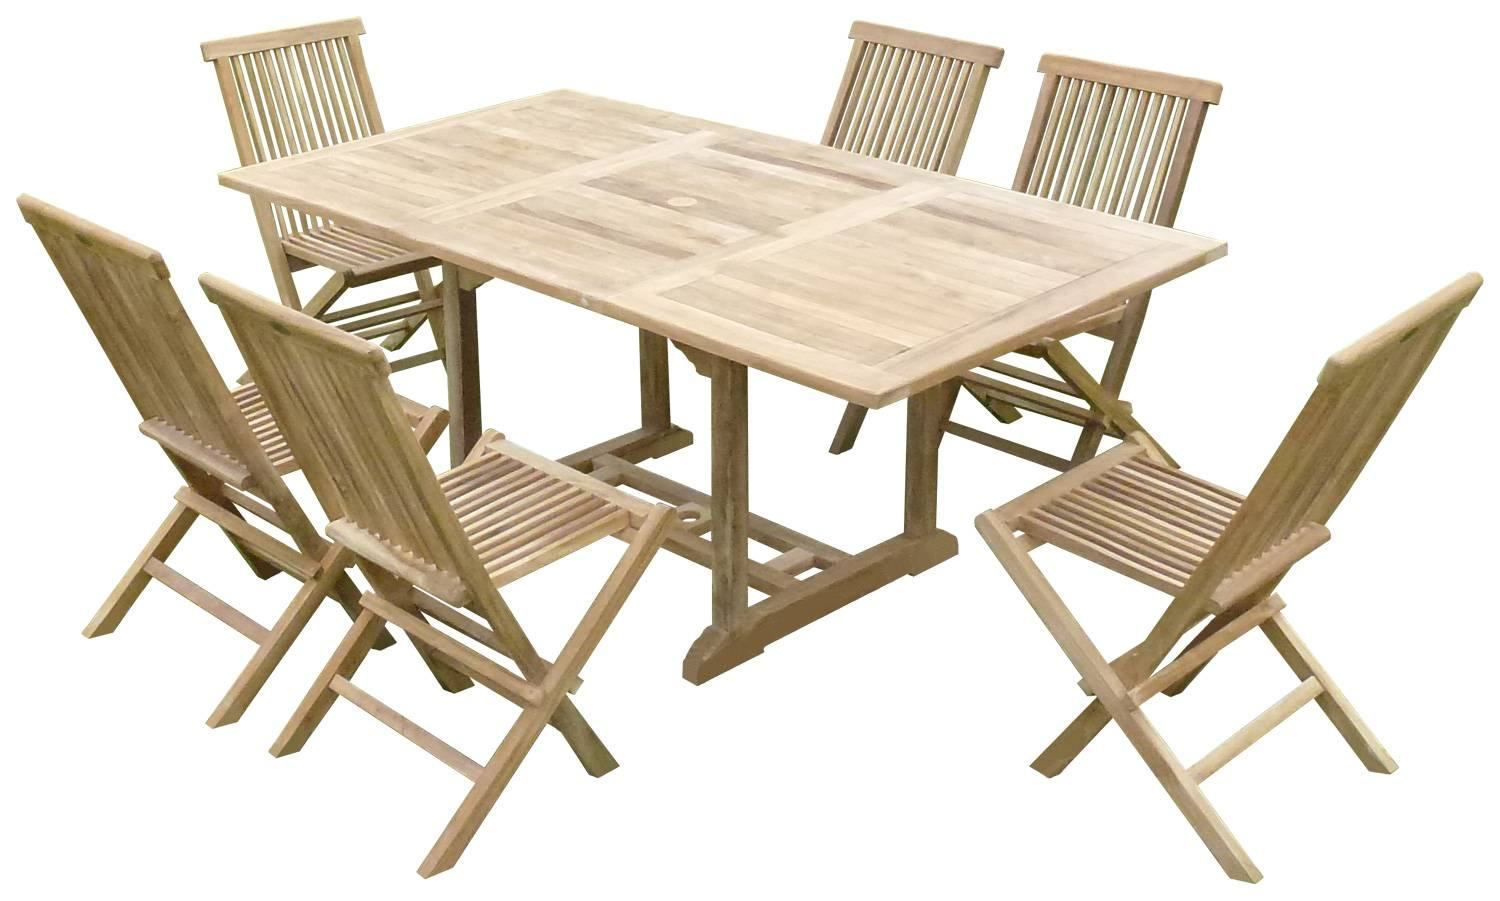 Emejing table de jardin pliante avec rallonge photos - Table pliante exterieur ...